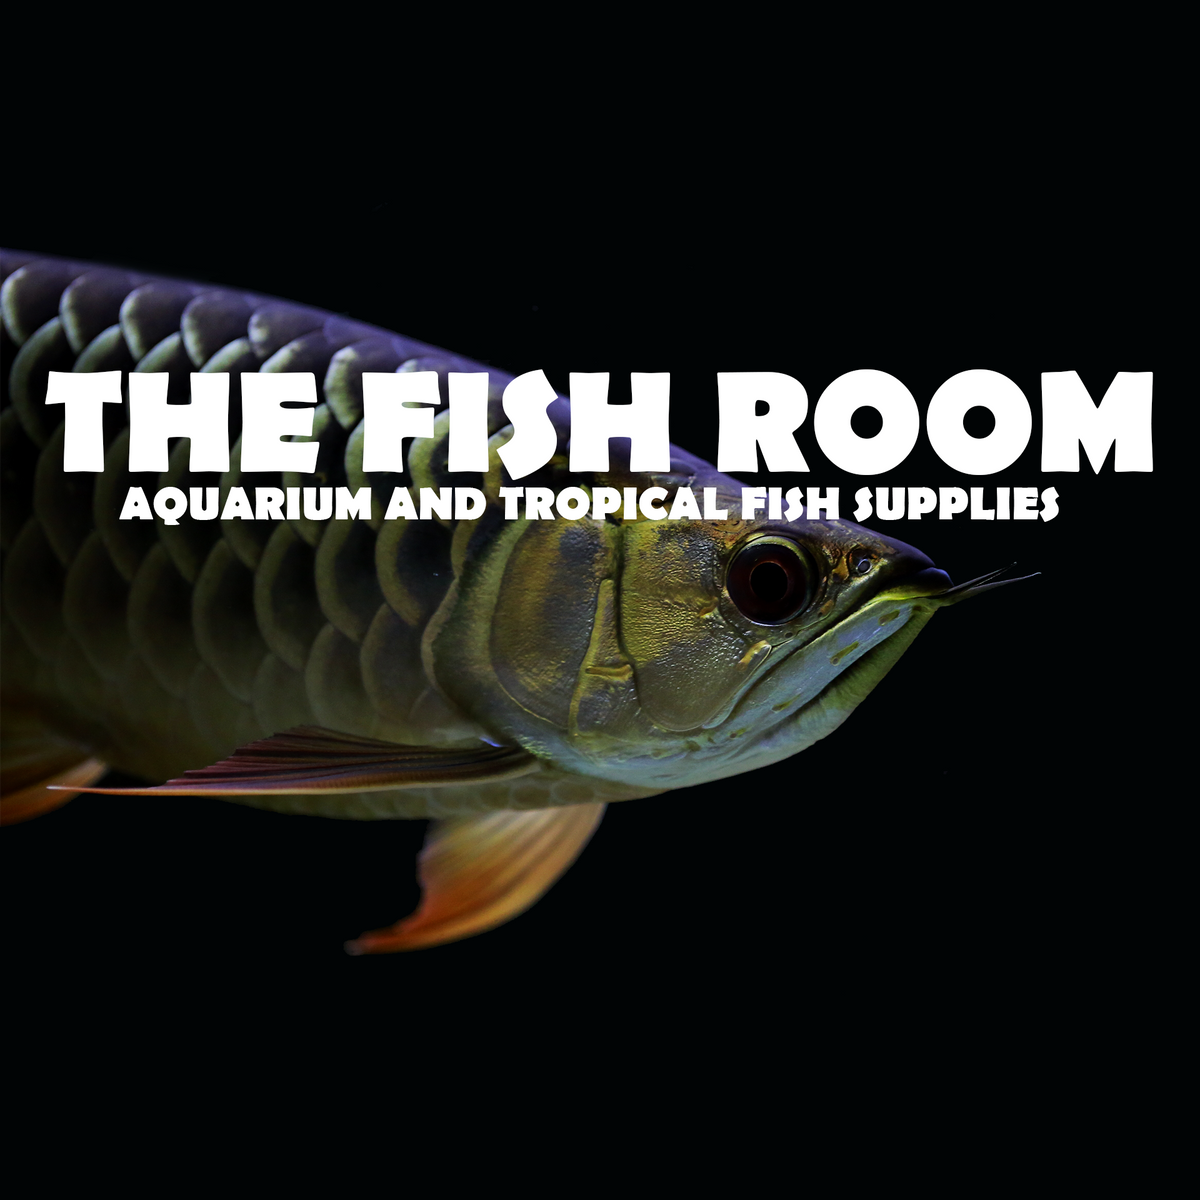 Tropical fish and aquarium online supply store – The Fish Room TFR